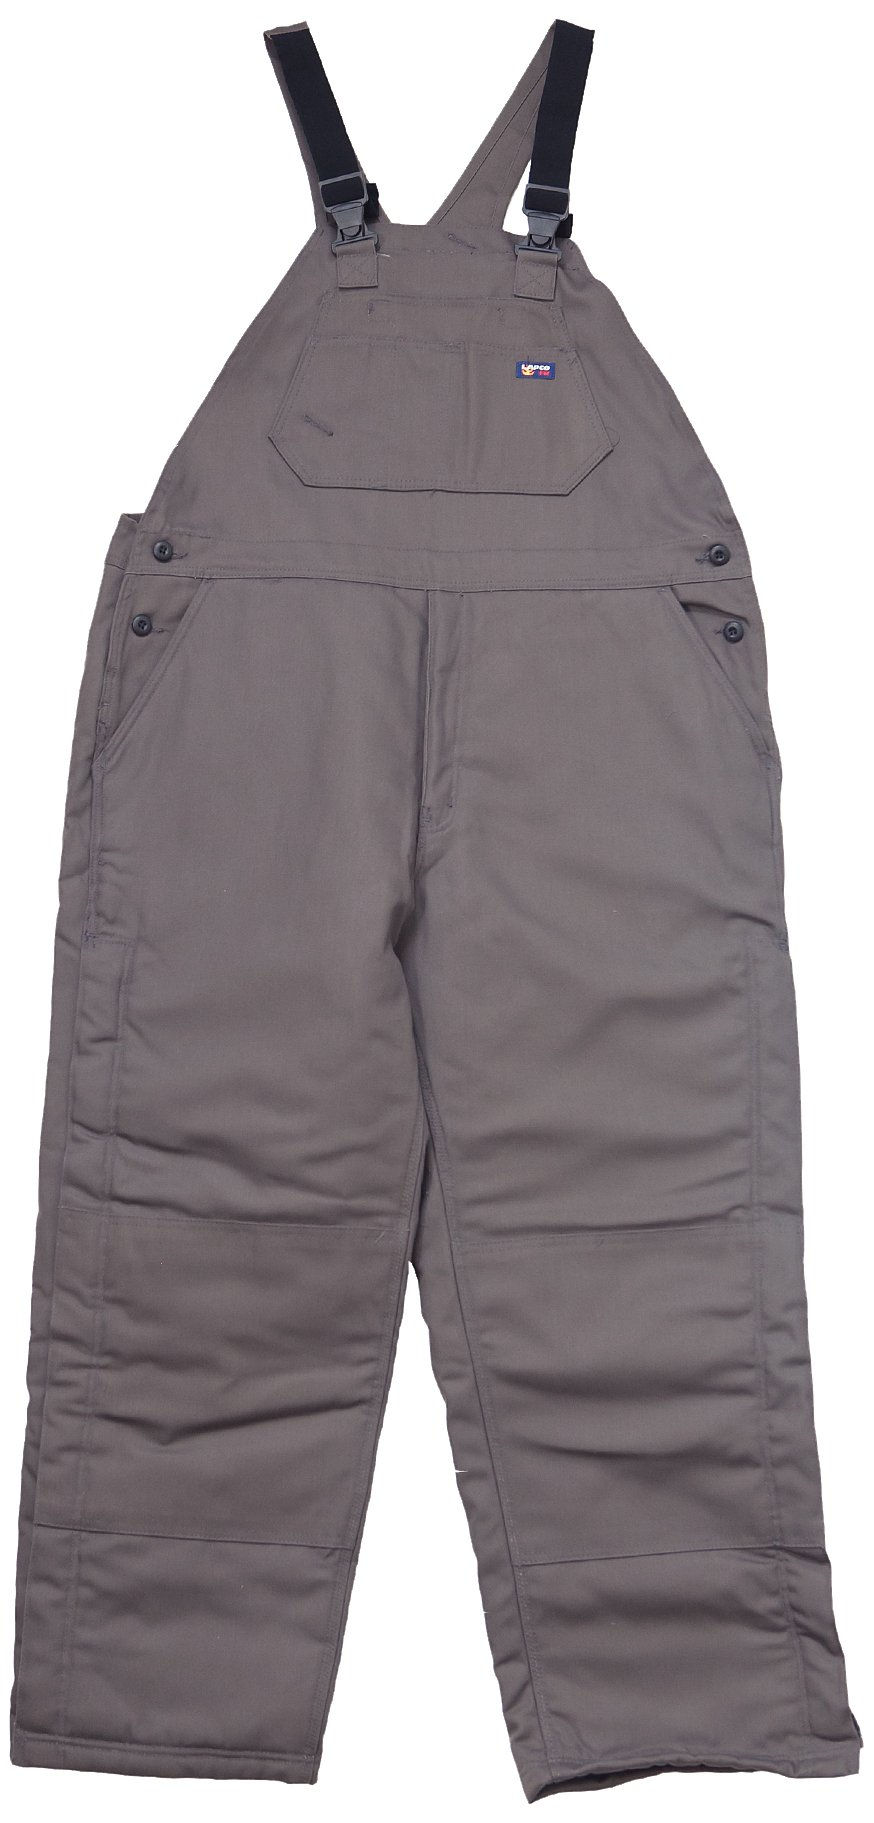 LAPCO BIFRGYDK-2XL TL 12-Ounce Duck Flame Resistant Insulated Bib Overall, Grey